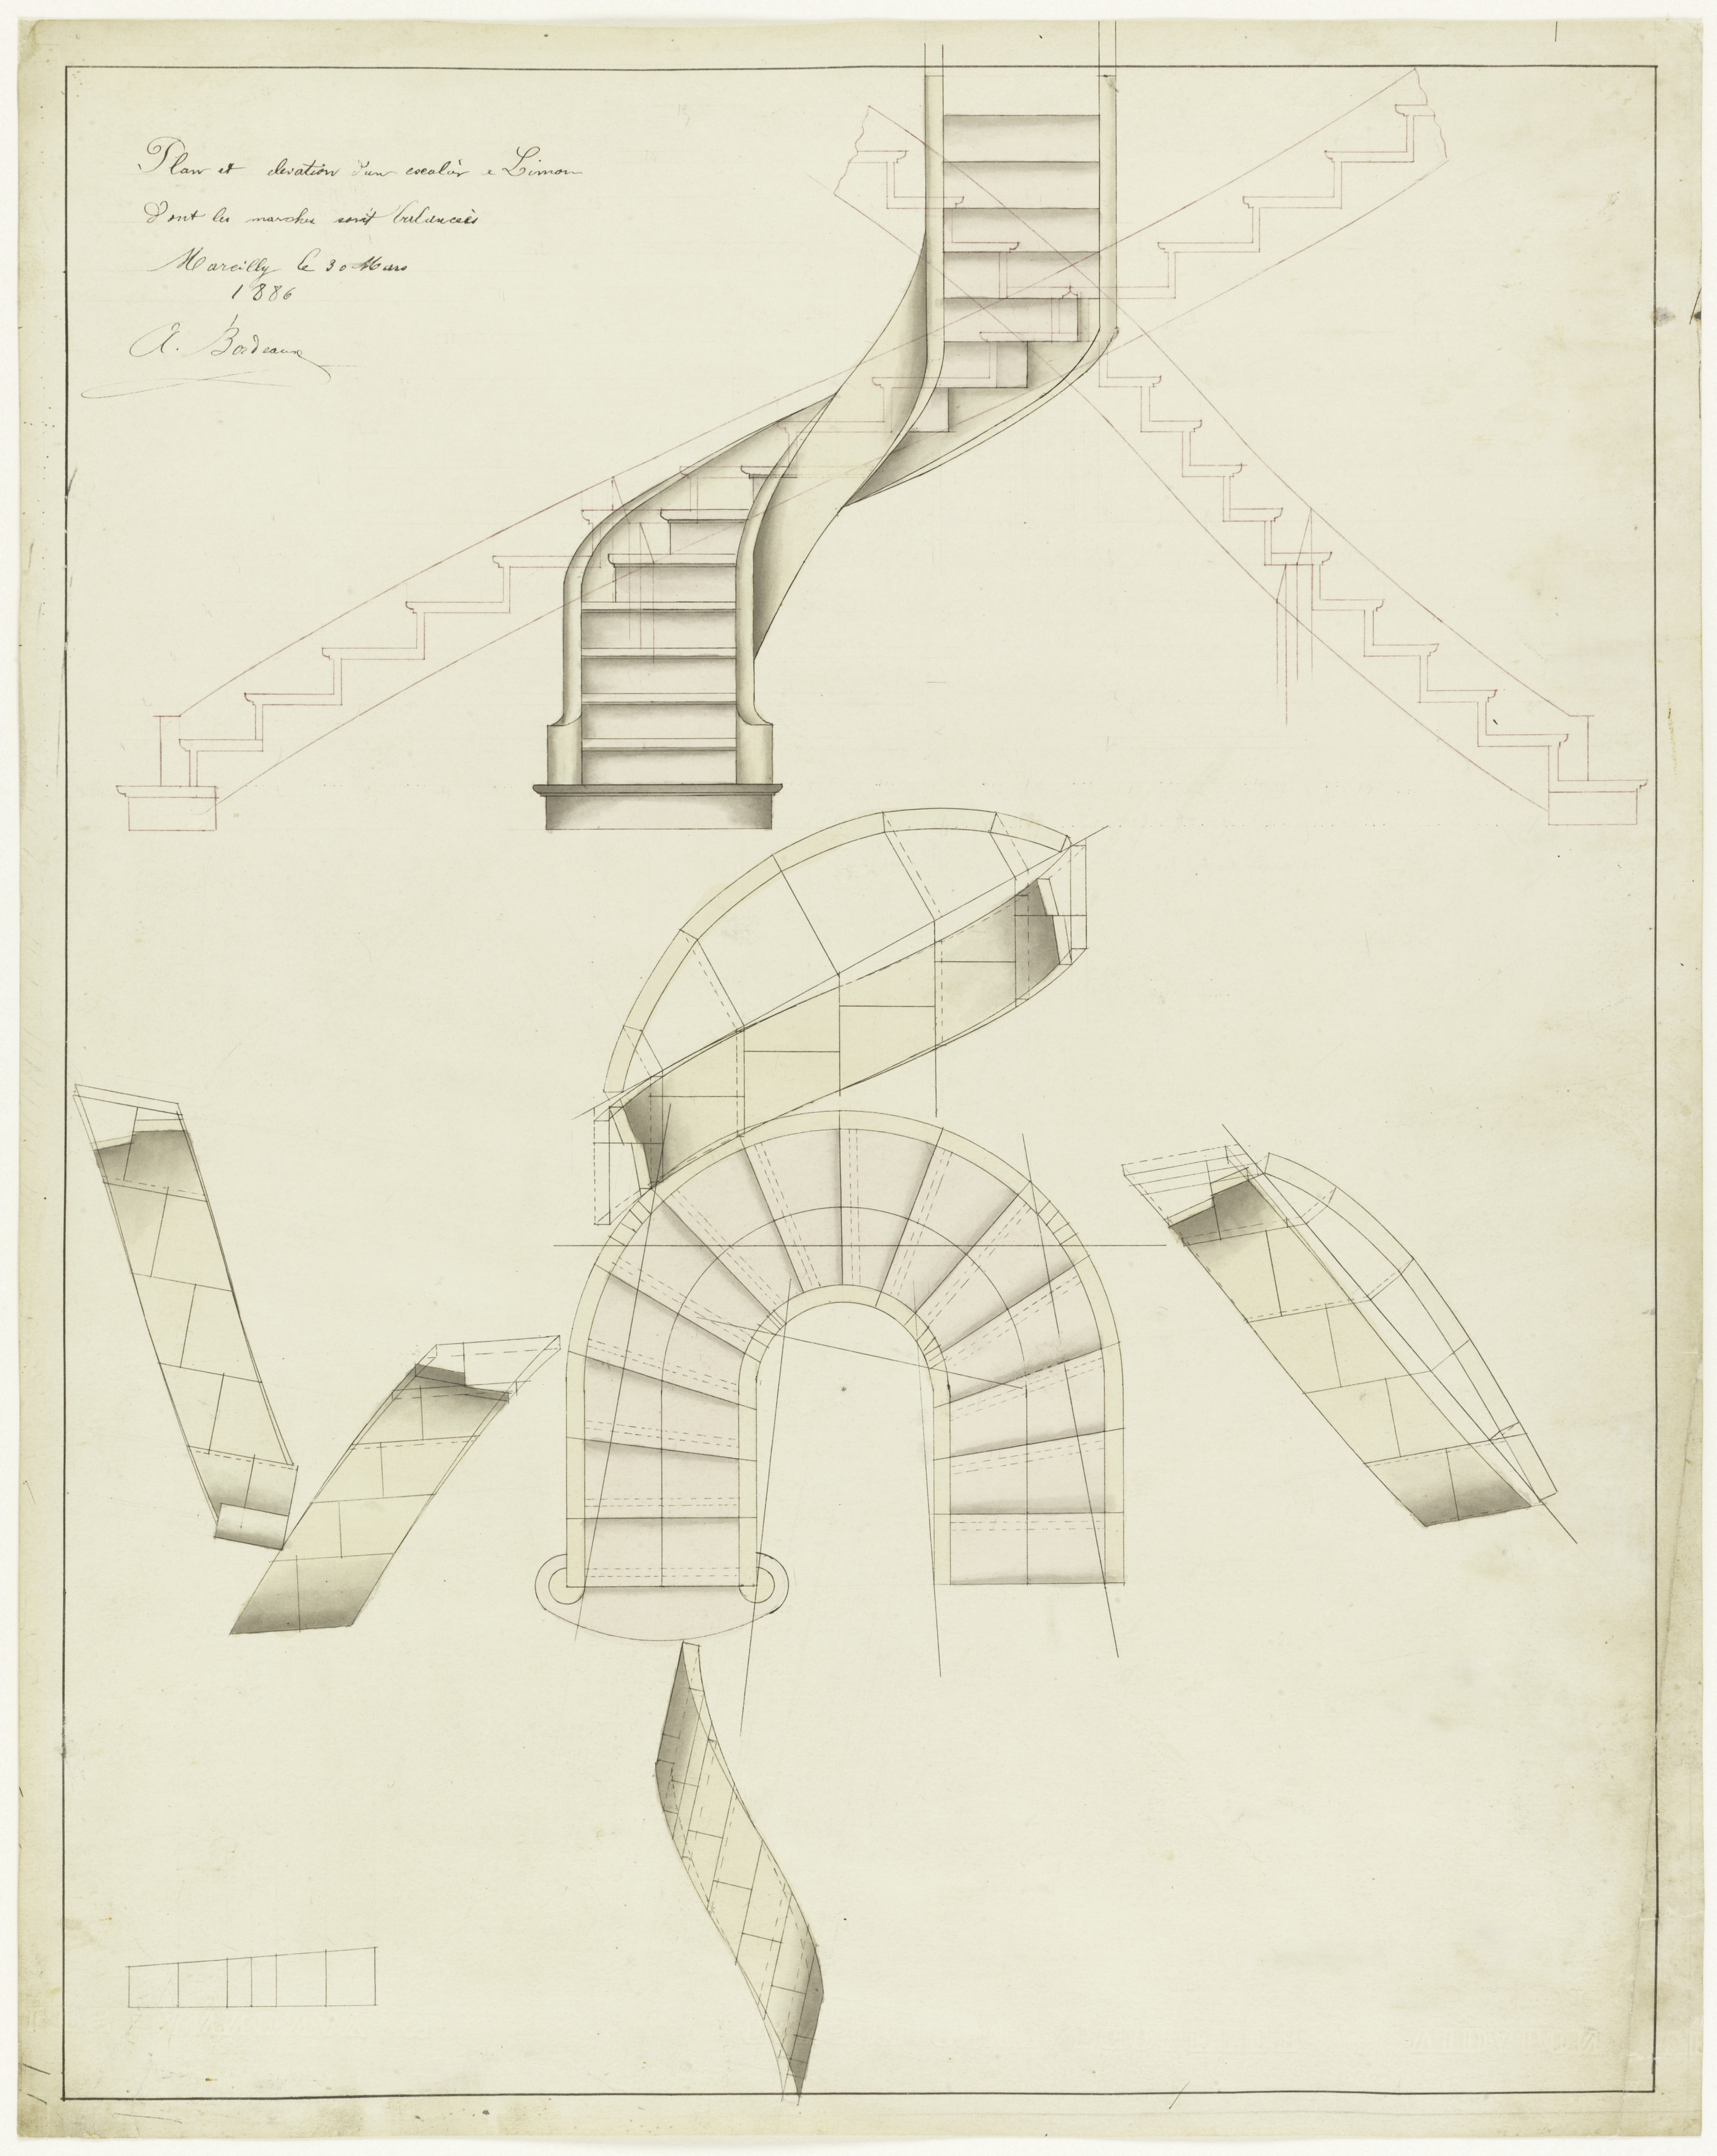 Picture of: Drawing Elevation And Plan View For A Spiral Staircase March 30 1886 Objects Collection Of Cooper Hewitt Smithsonian Design Museum